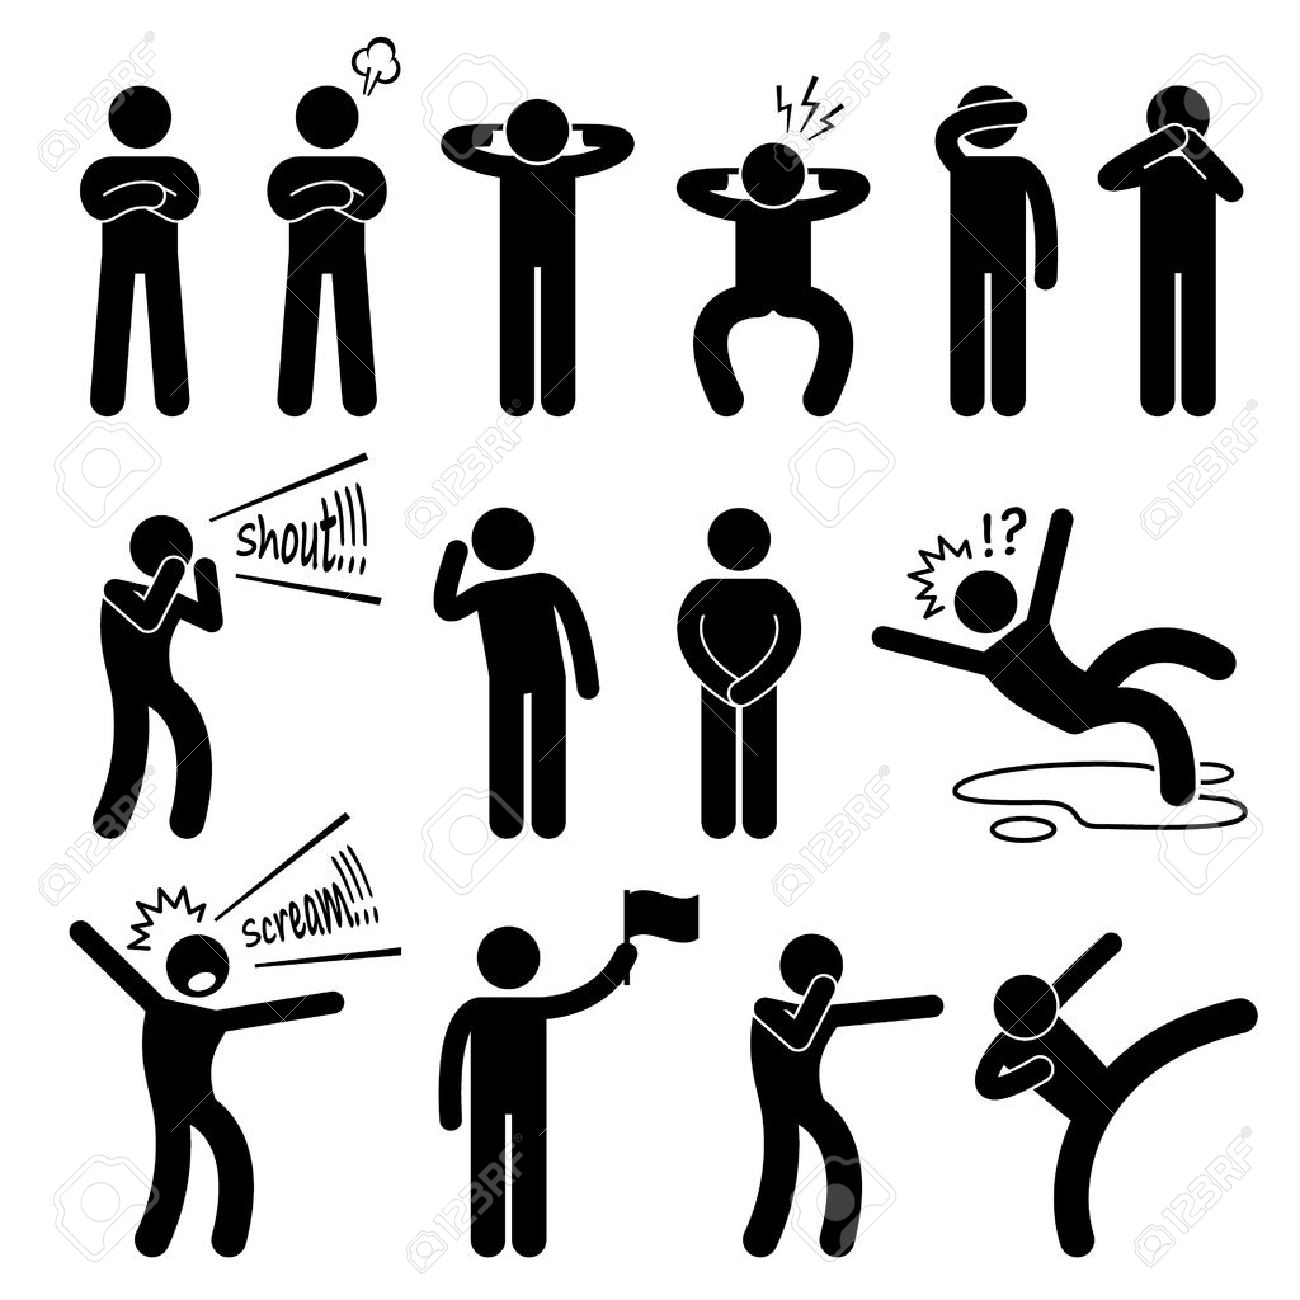 Human Action Poses Postures Stick Figure Pictogram Icons - 35490403